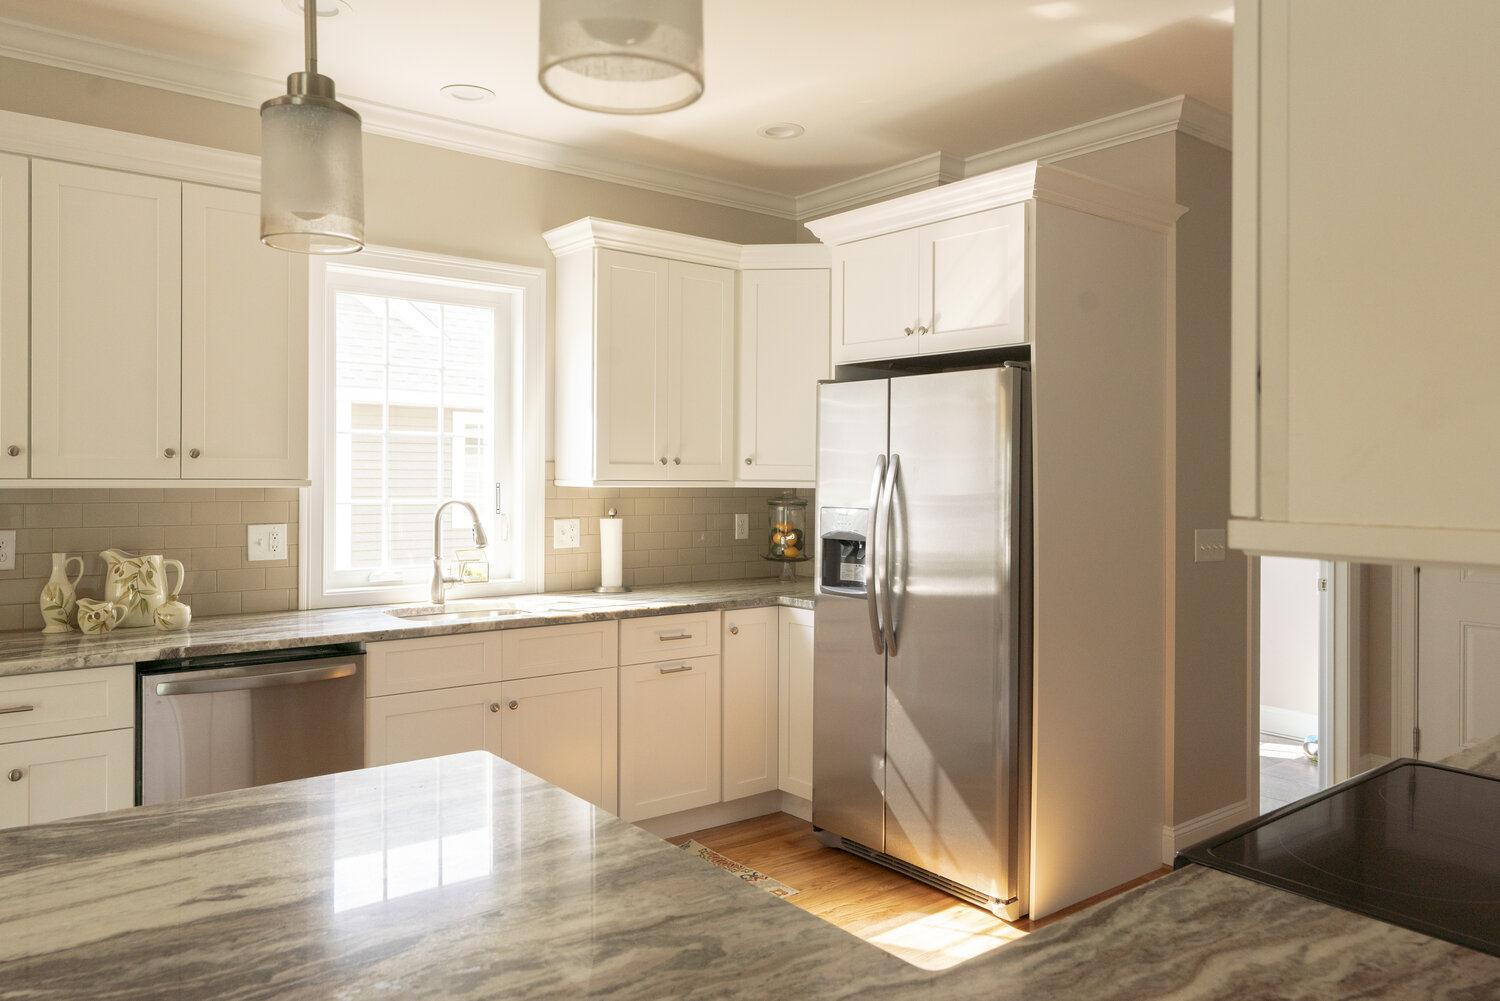 Kitchen featured in The Cornwall By Bidwell Village in Hartford, CT